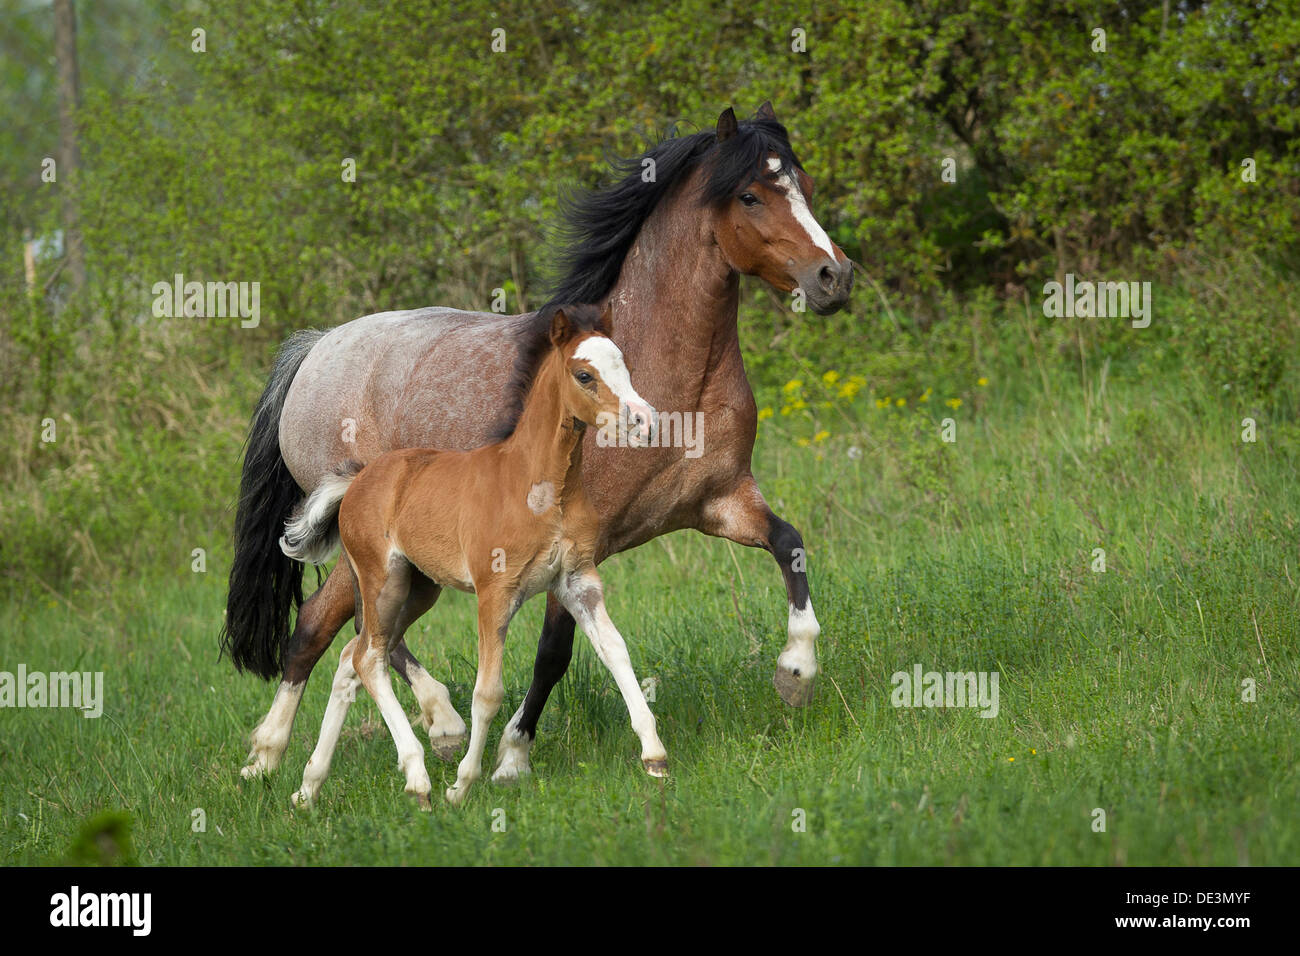 welsh pony section b strawberry roan mare foal trottinga